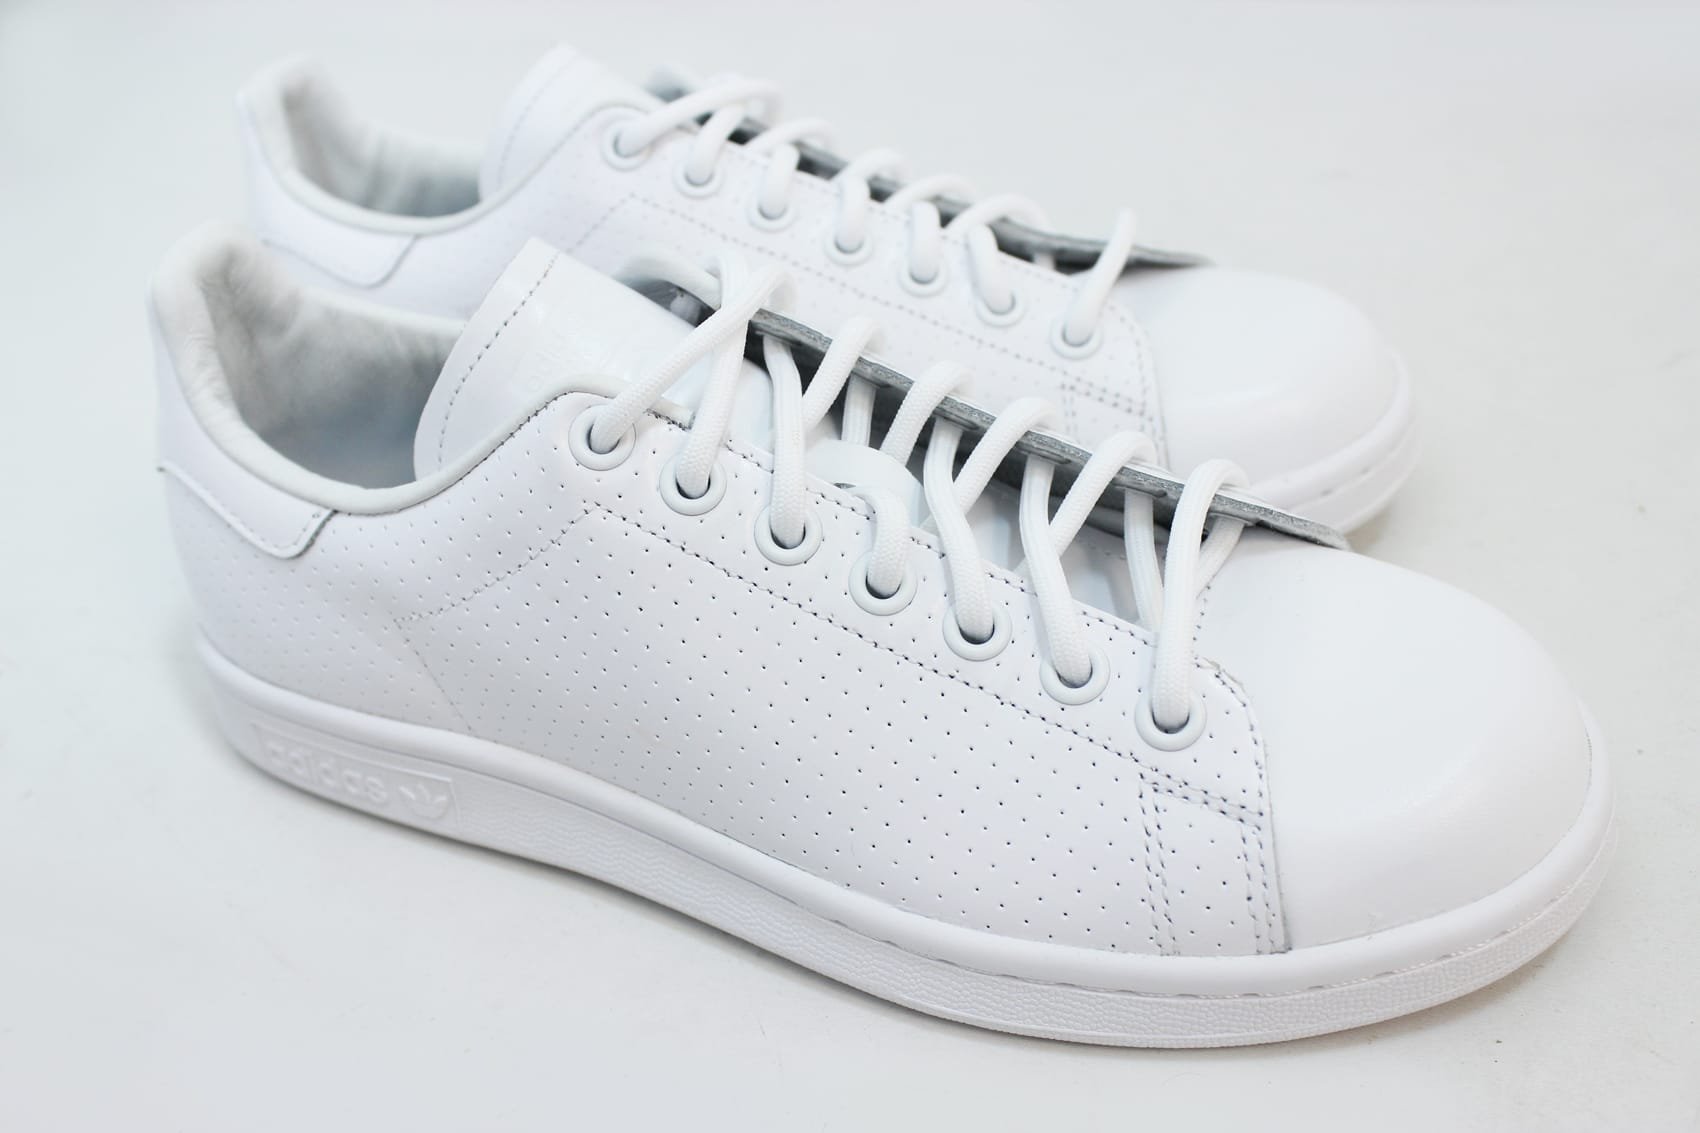 Adidas Stan Smith in White/Green features Side Foot Hole Stripe Pattern,  Leather Upper. Branded Heel Tab. The classic Stan Smith style arrives for  ...